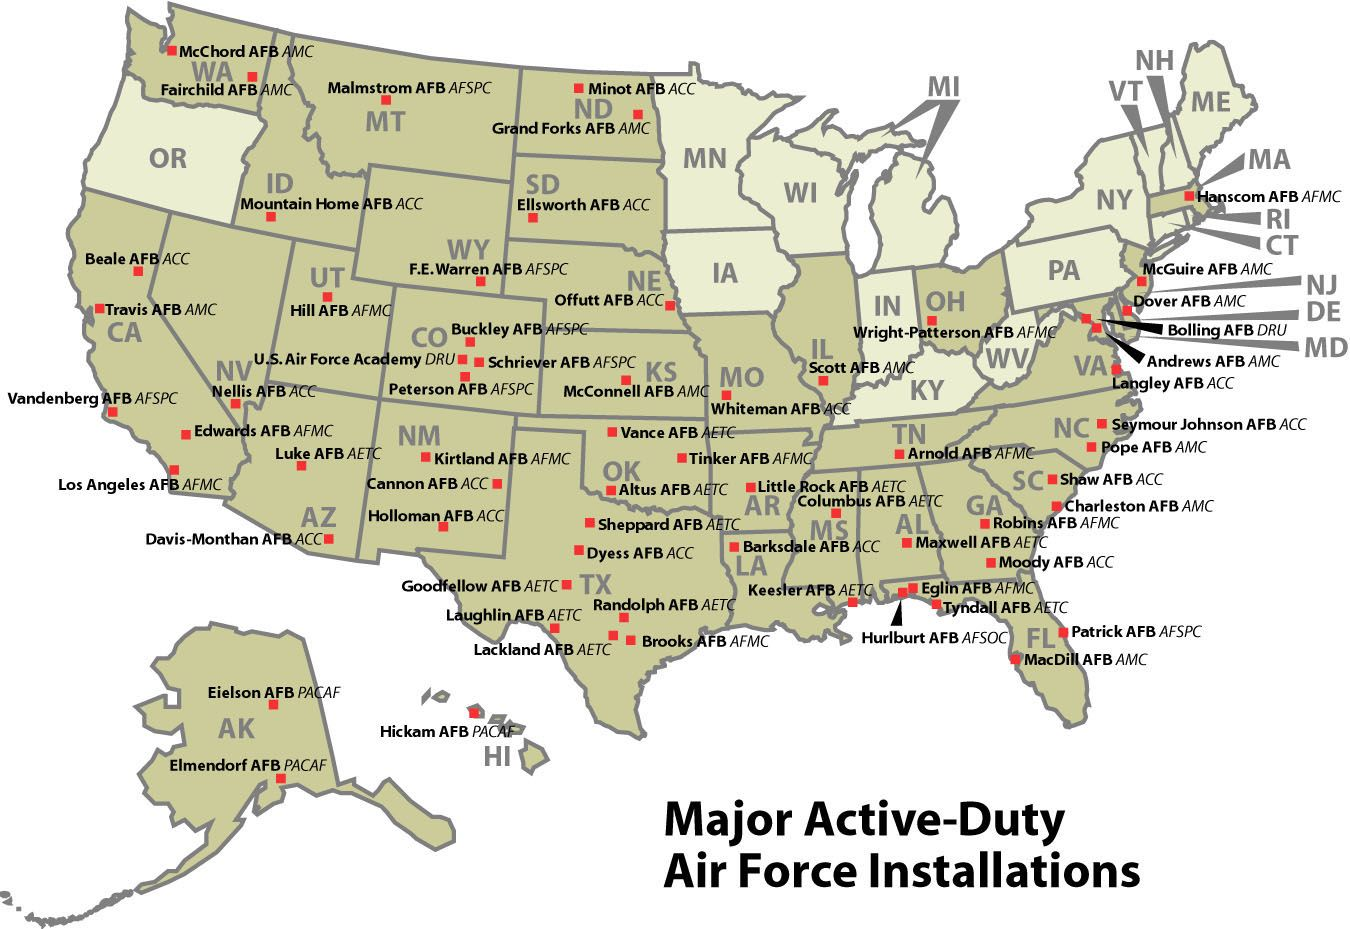 map of air force bases in united states Exactly what I need for our